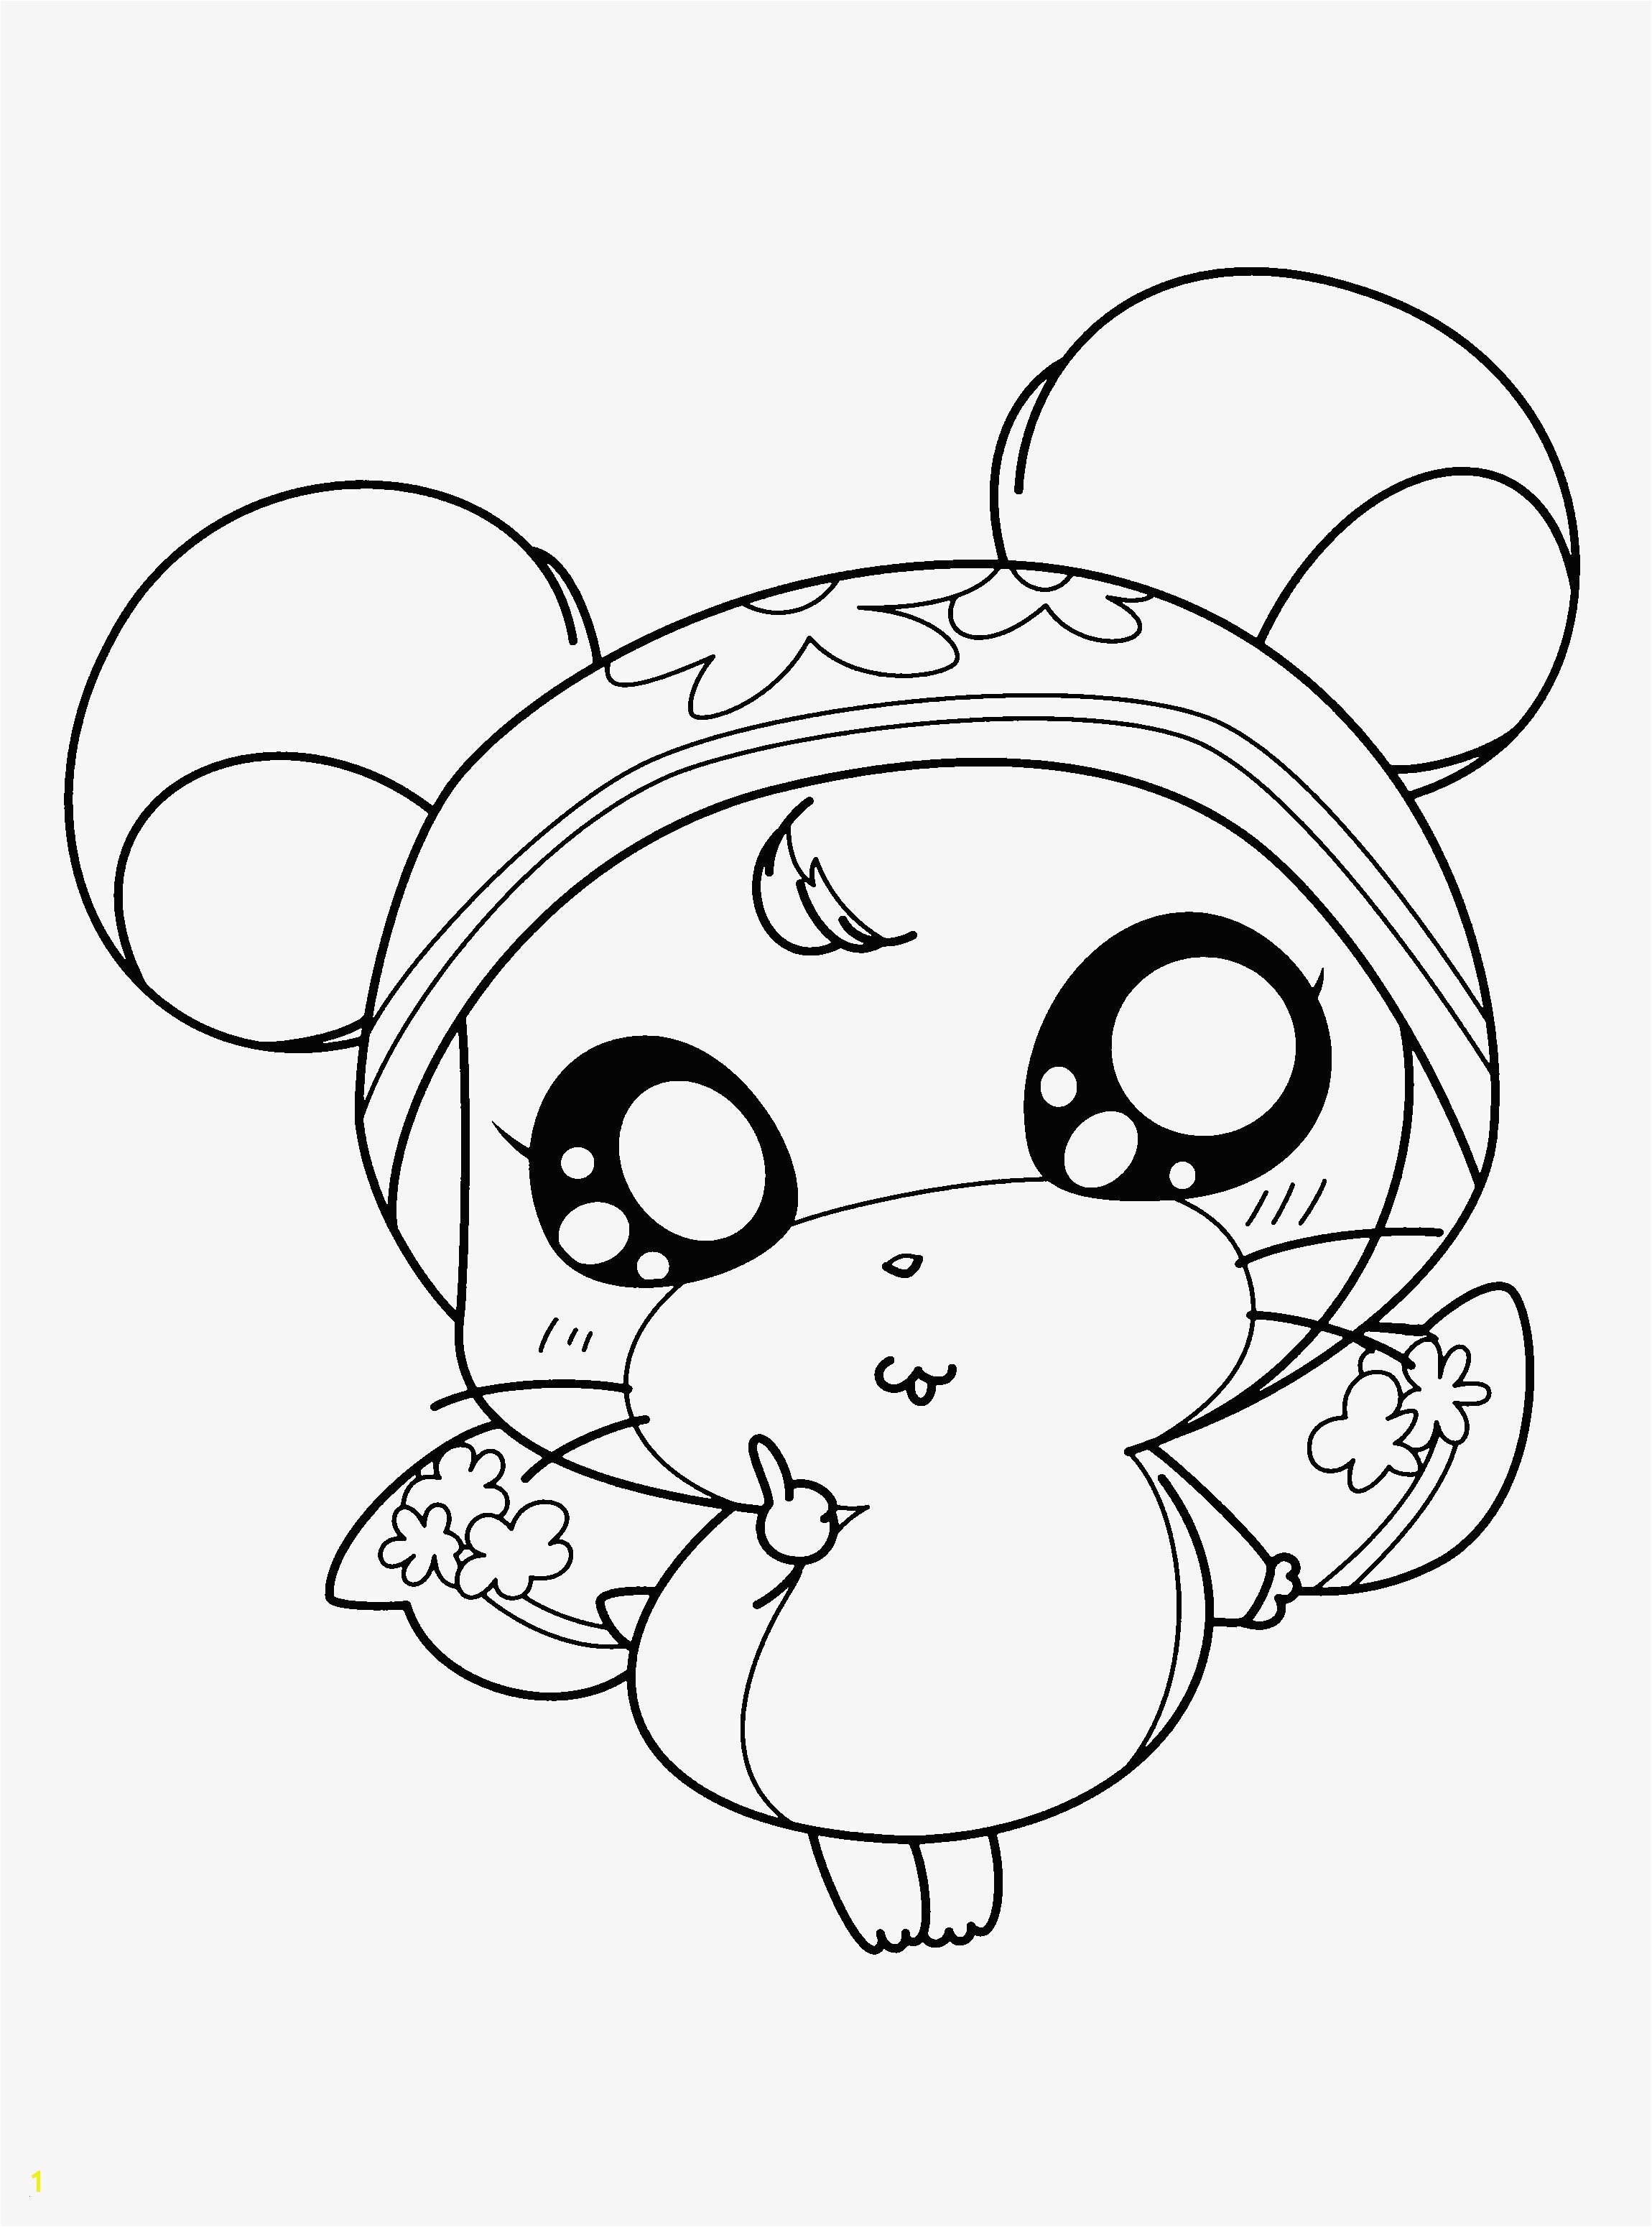 pokemon coloring pages for kids pokemon coloring pages printable fresh coloring printables 0d fun coloring pages coloring pages of cute baby animals